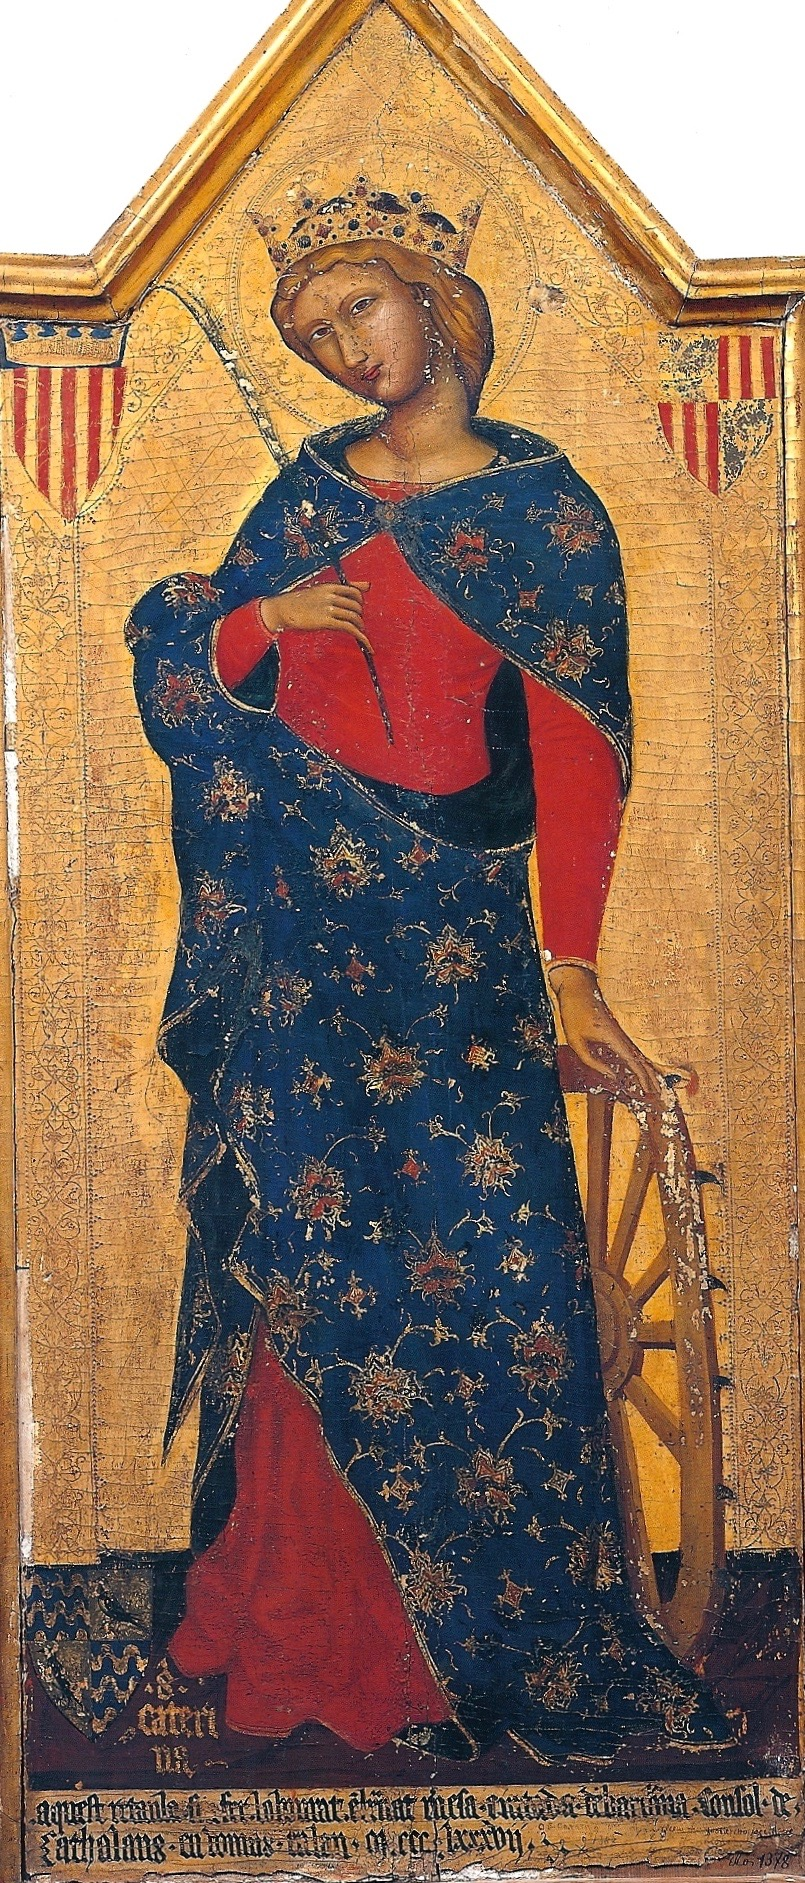 A fourteenth century Catalonian icon representative of the Saint's renown in Europe.